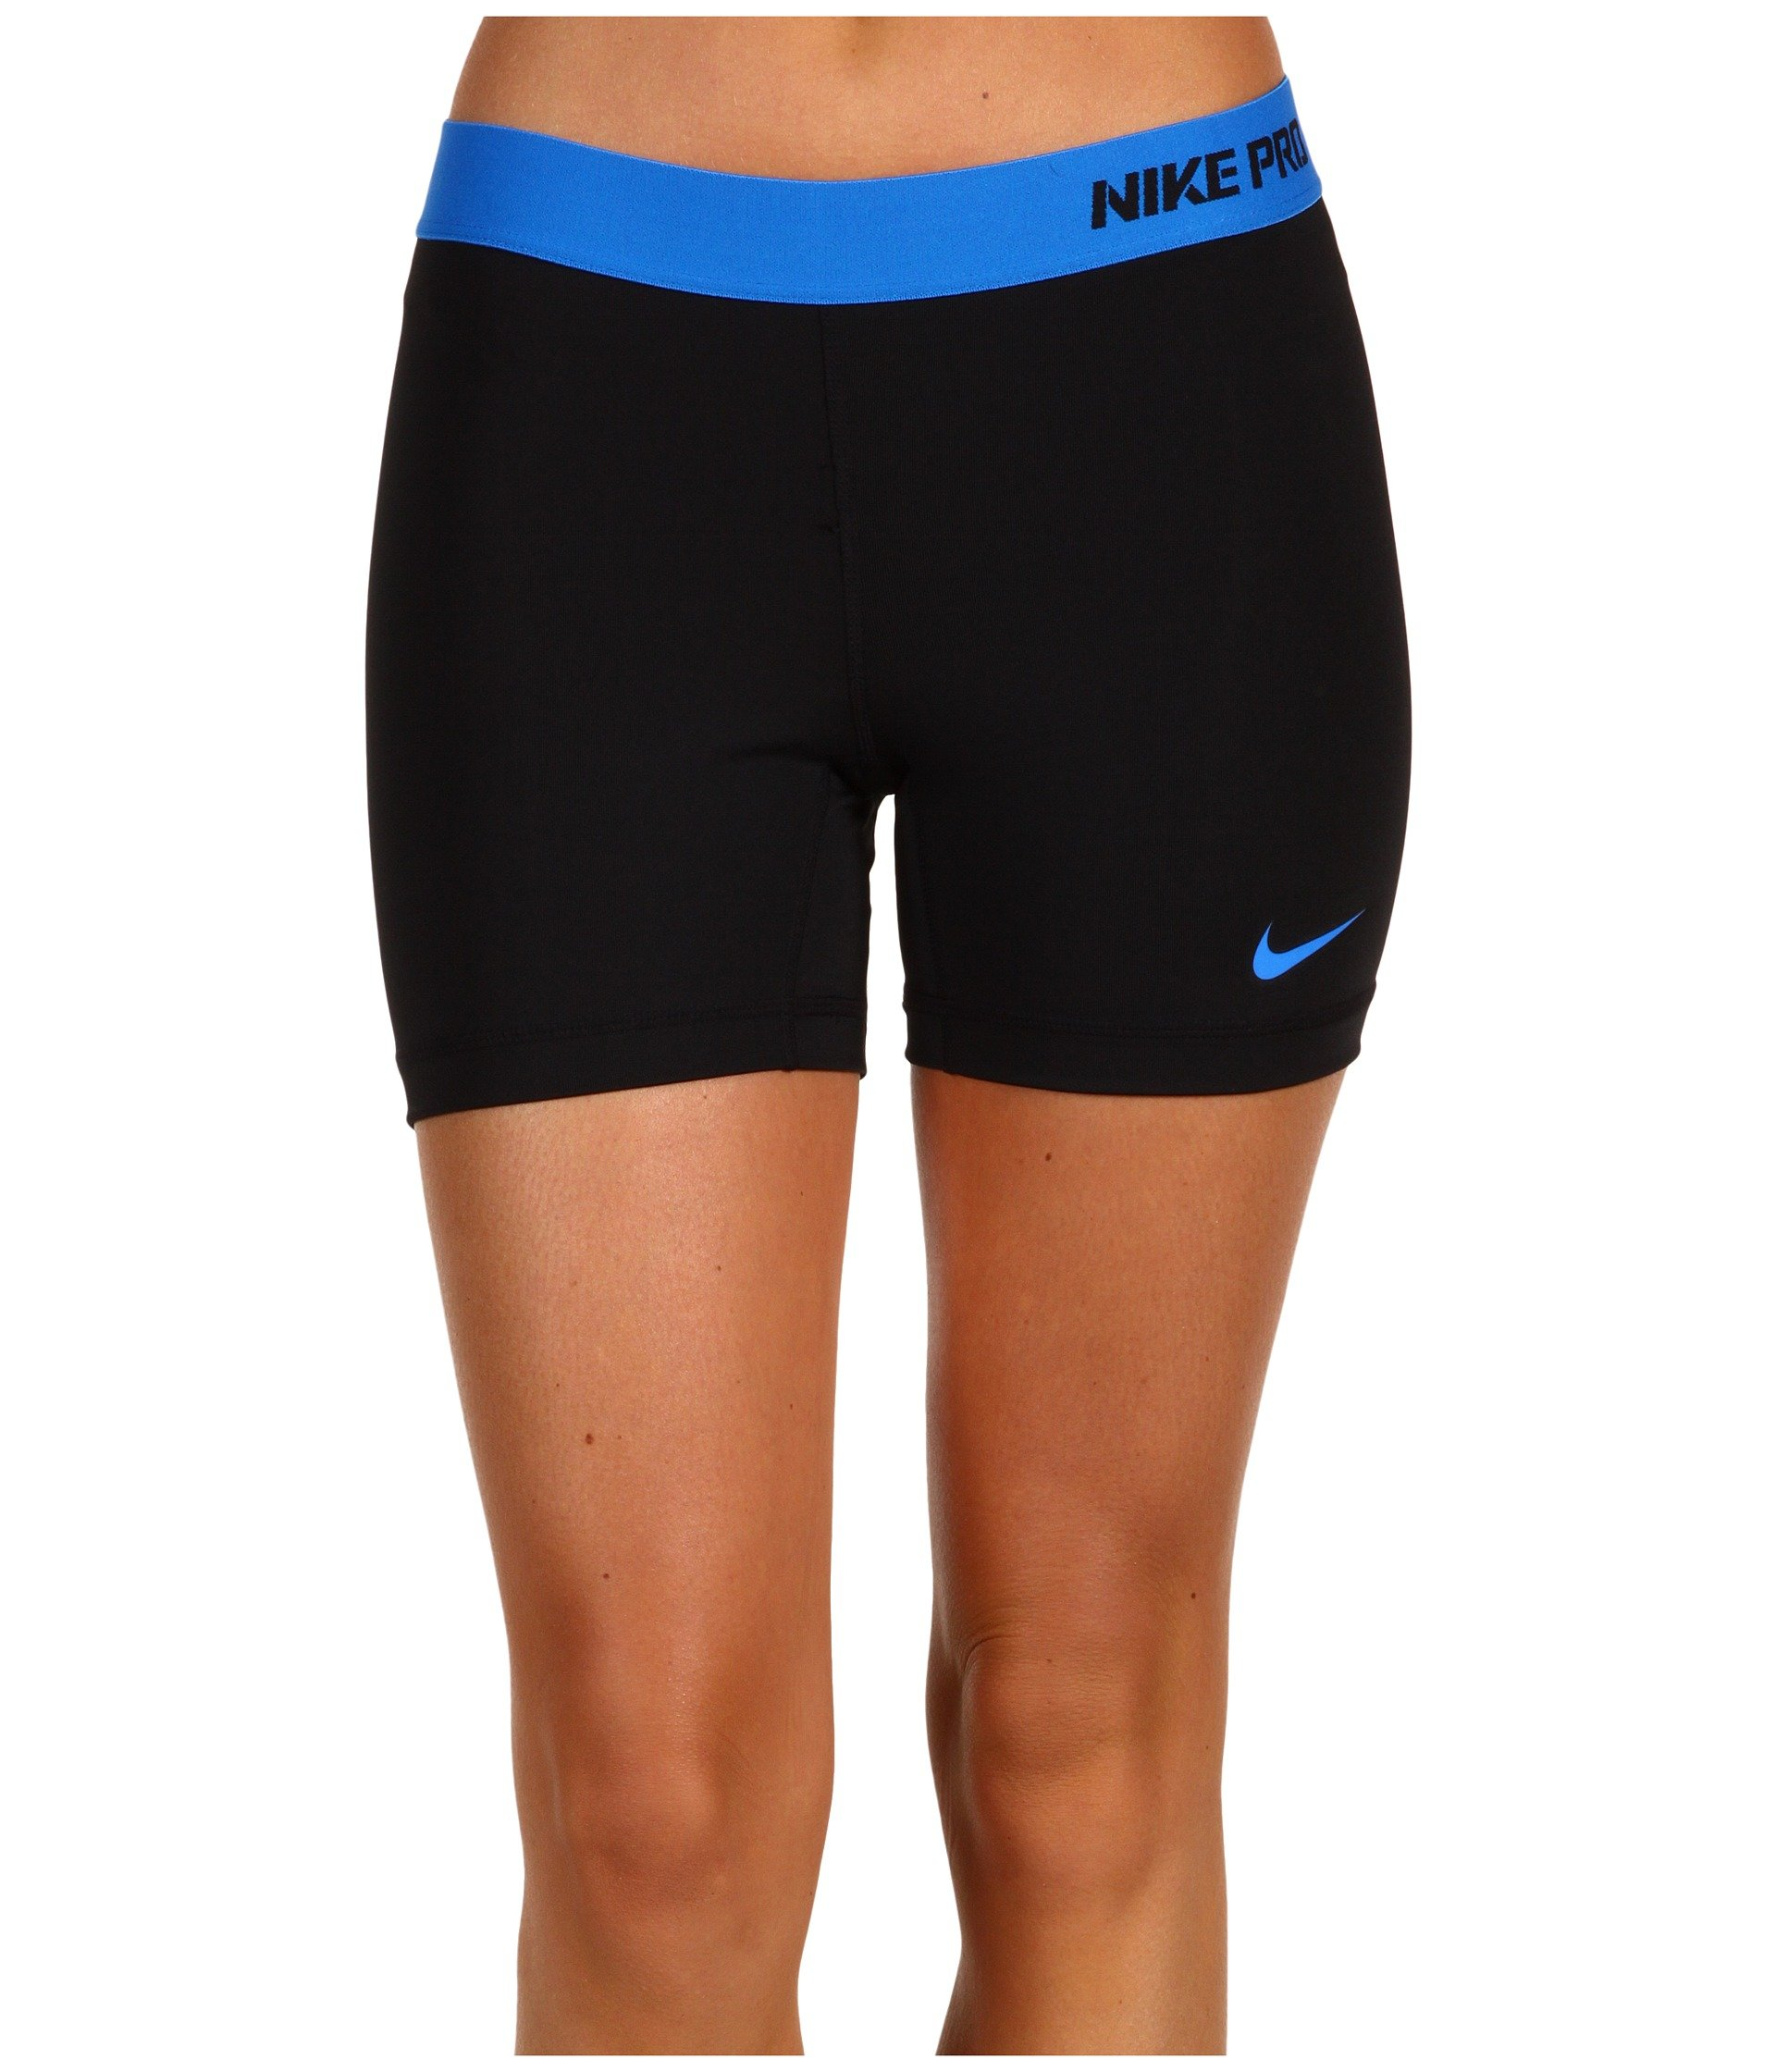 Nike Women's Victory Base Layer 5'' Training Shorts (Black/Vivid Pink/White, X-Small) by Nike (Image #1)